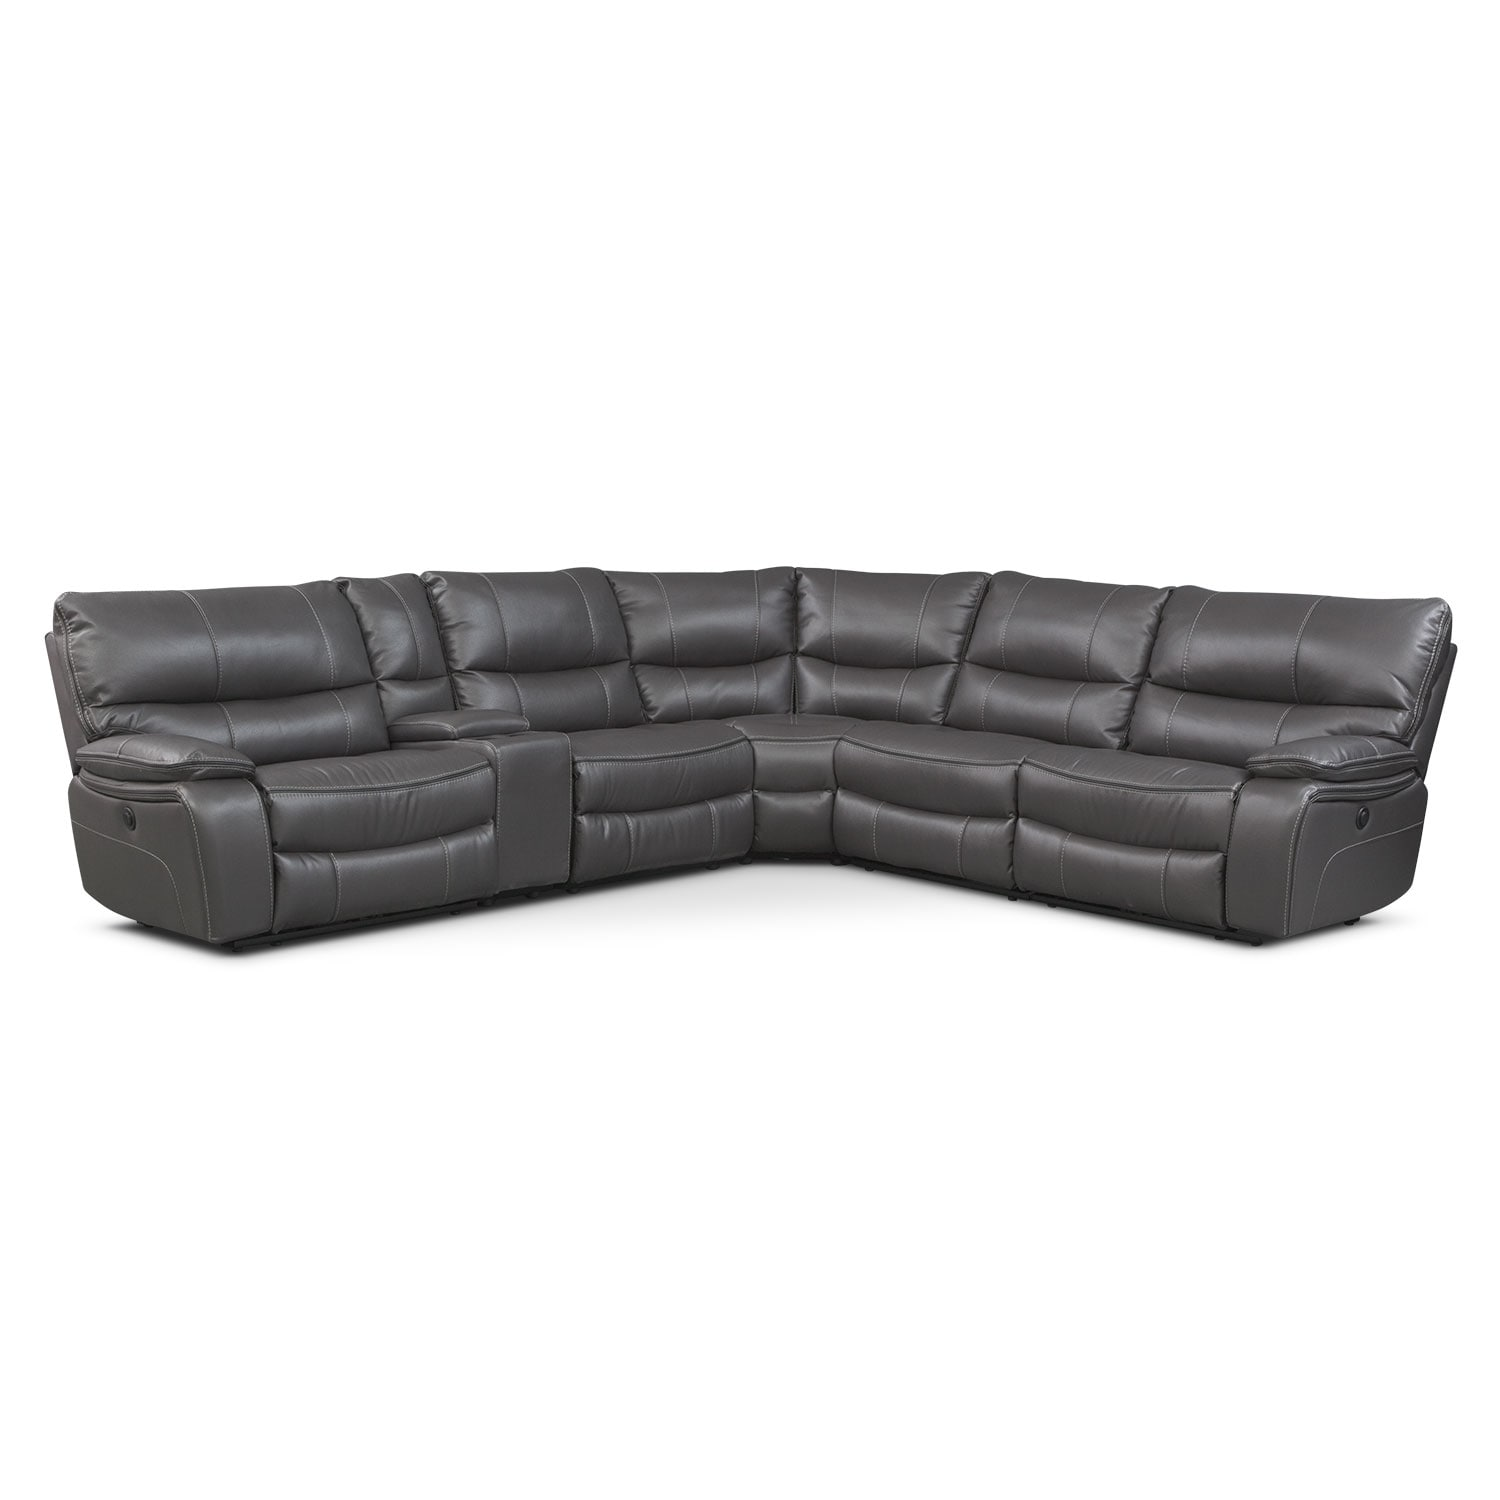 Orlando 6-Piece Power Reclining Sectional With 2